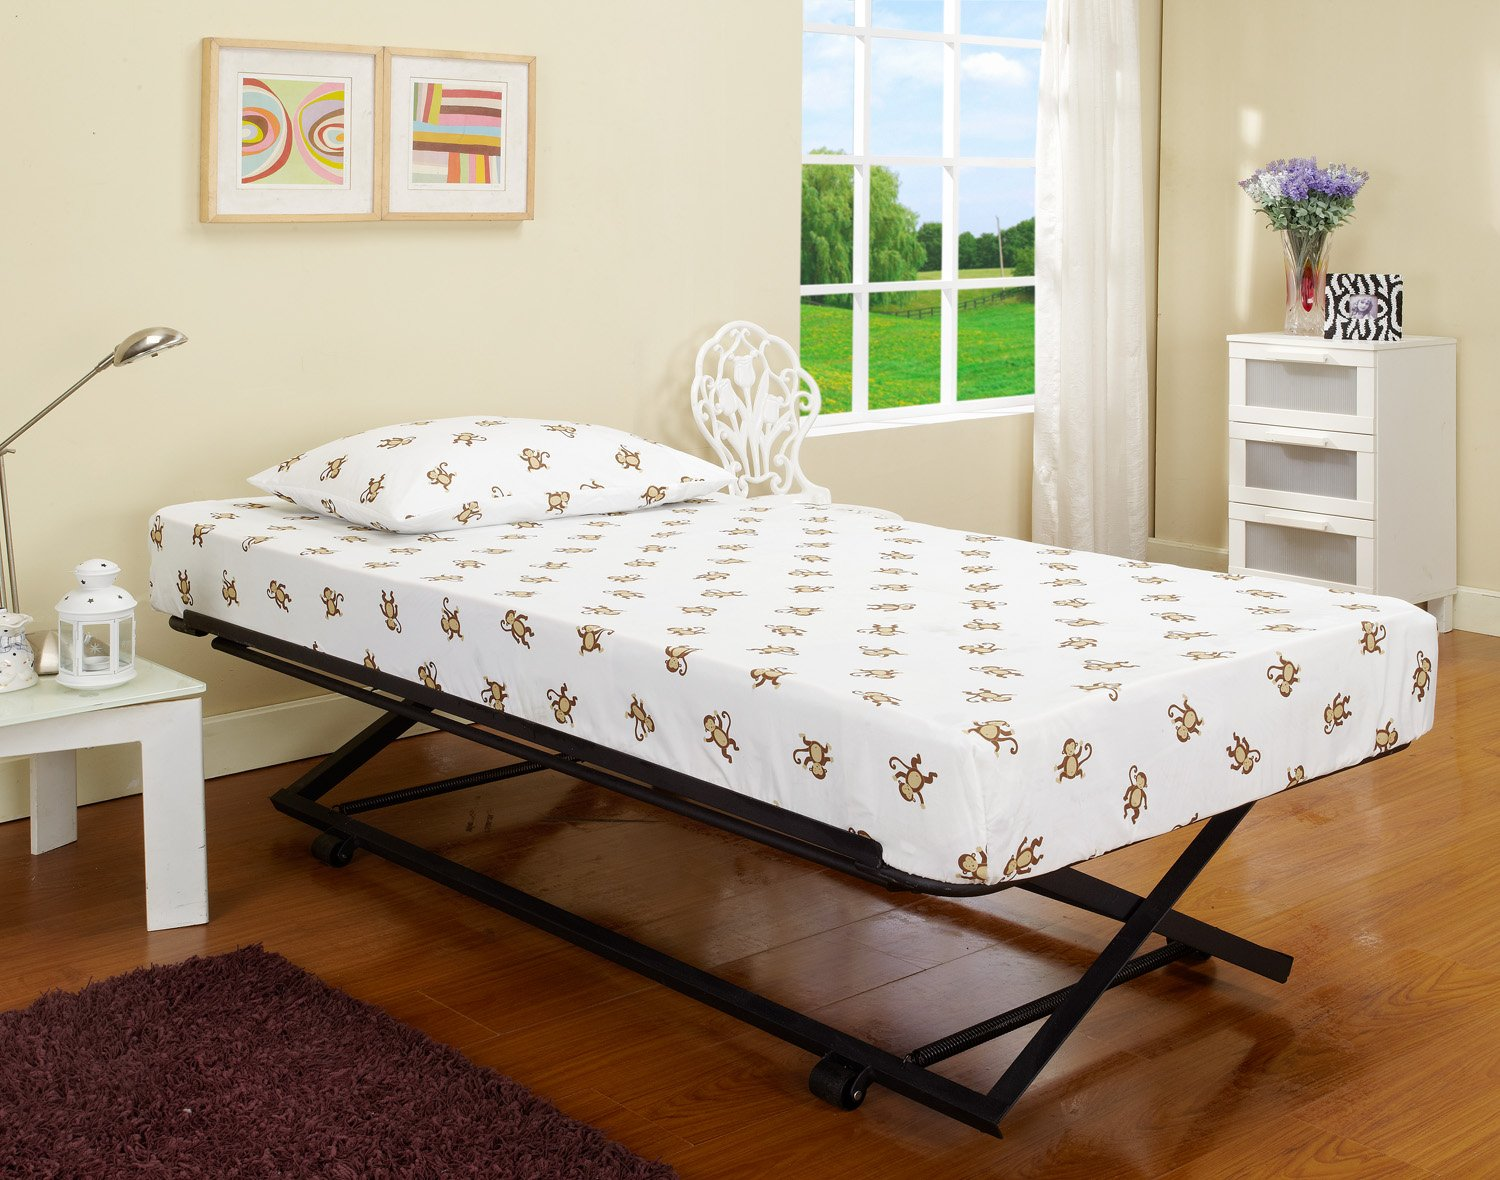 Amazon.com: 39''/ Twin Size Black Metal Pop Up Trundle For Daybeds: Kitchen  & Dining - Amazon.com: 39''/ Twin Size Black Metal Pop Up Trundle For Daybeds